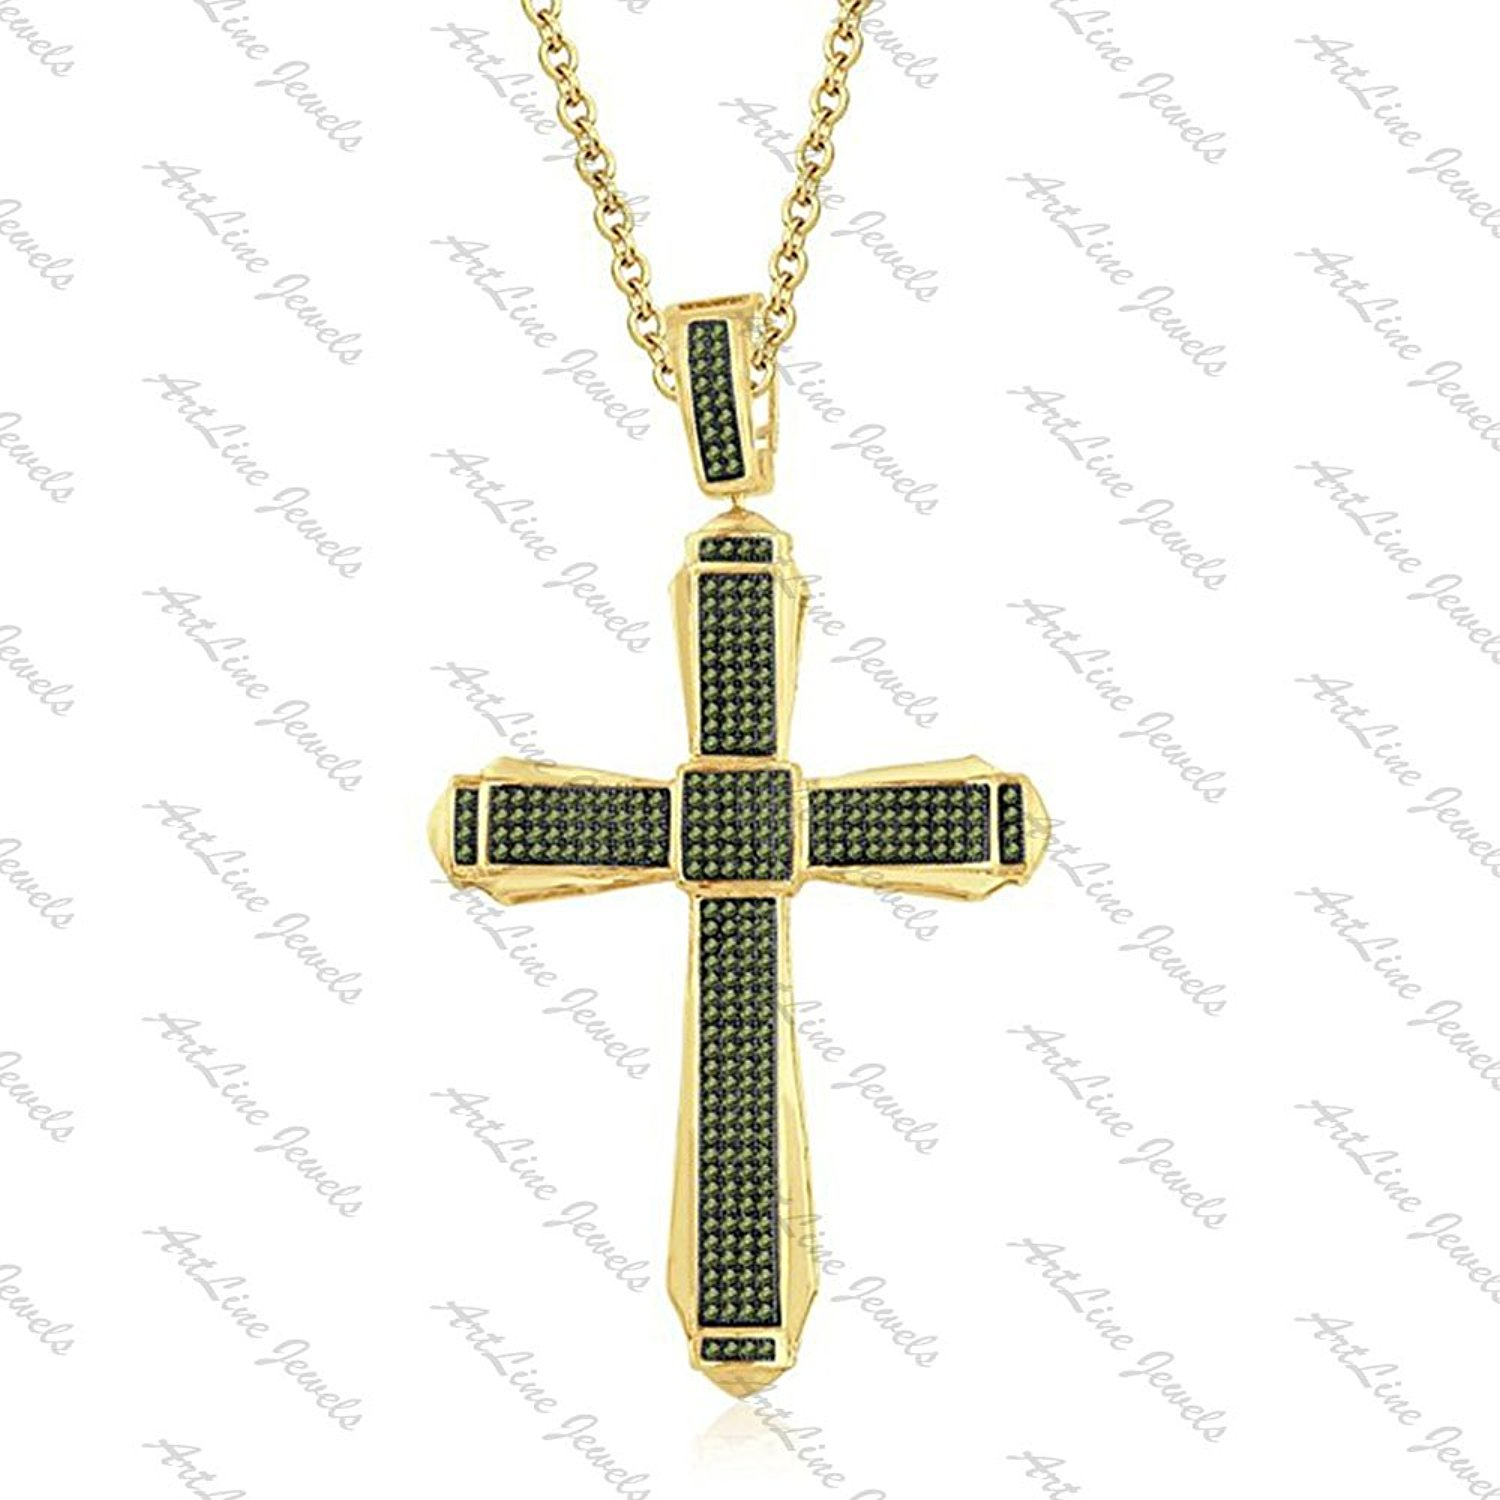 f0cbb8600d5d3 Cheap Holy Religious Necklace, find Holy Religious Necklace deals on ...